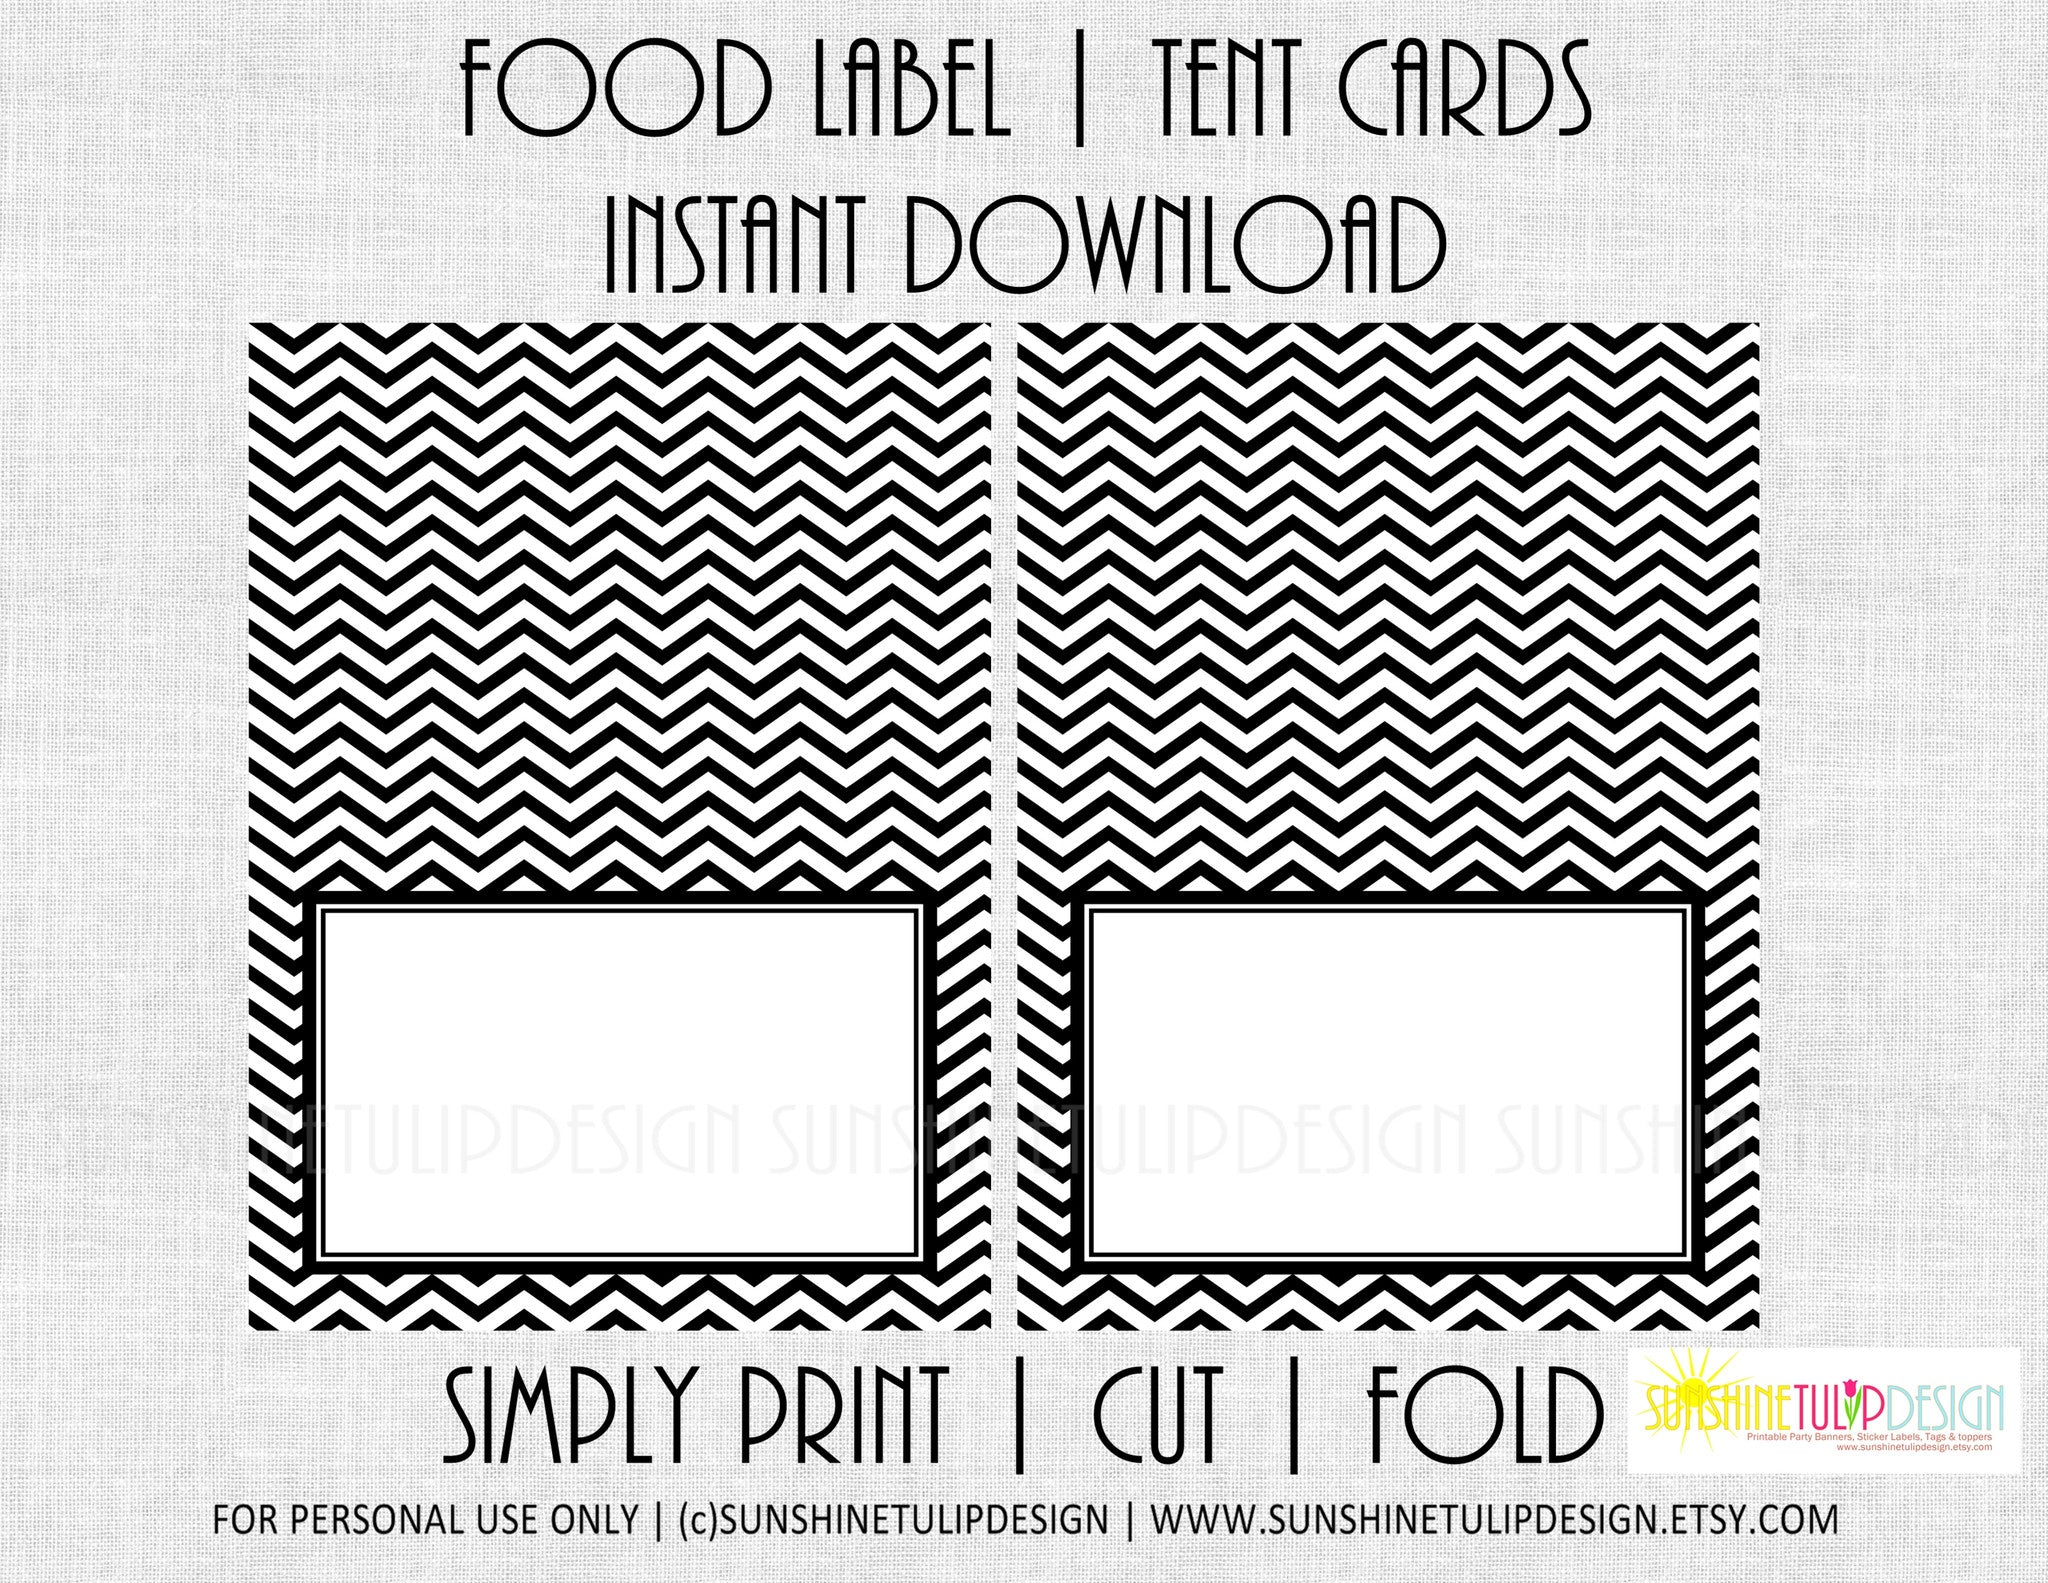 graphic regarding Printable Food Labels known as Printable Food stuff Label Tent Playing cards Black White Chevron All Party playing cards by means of SUNSHINETULIPDESIGN